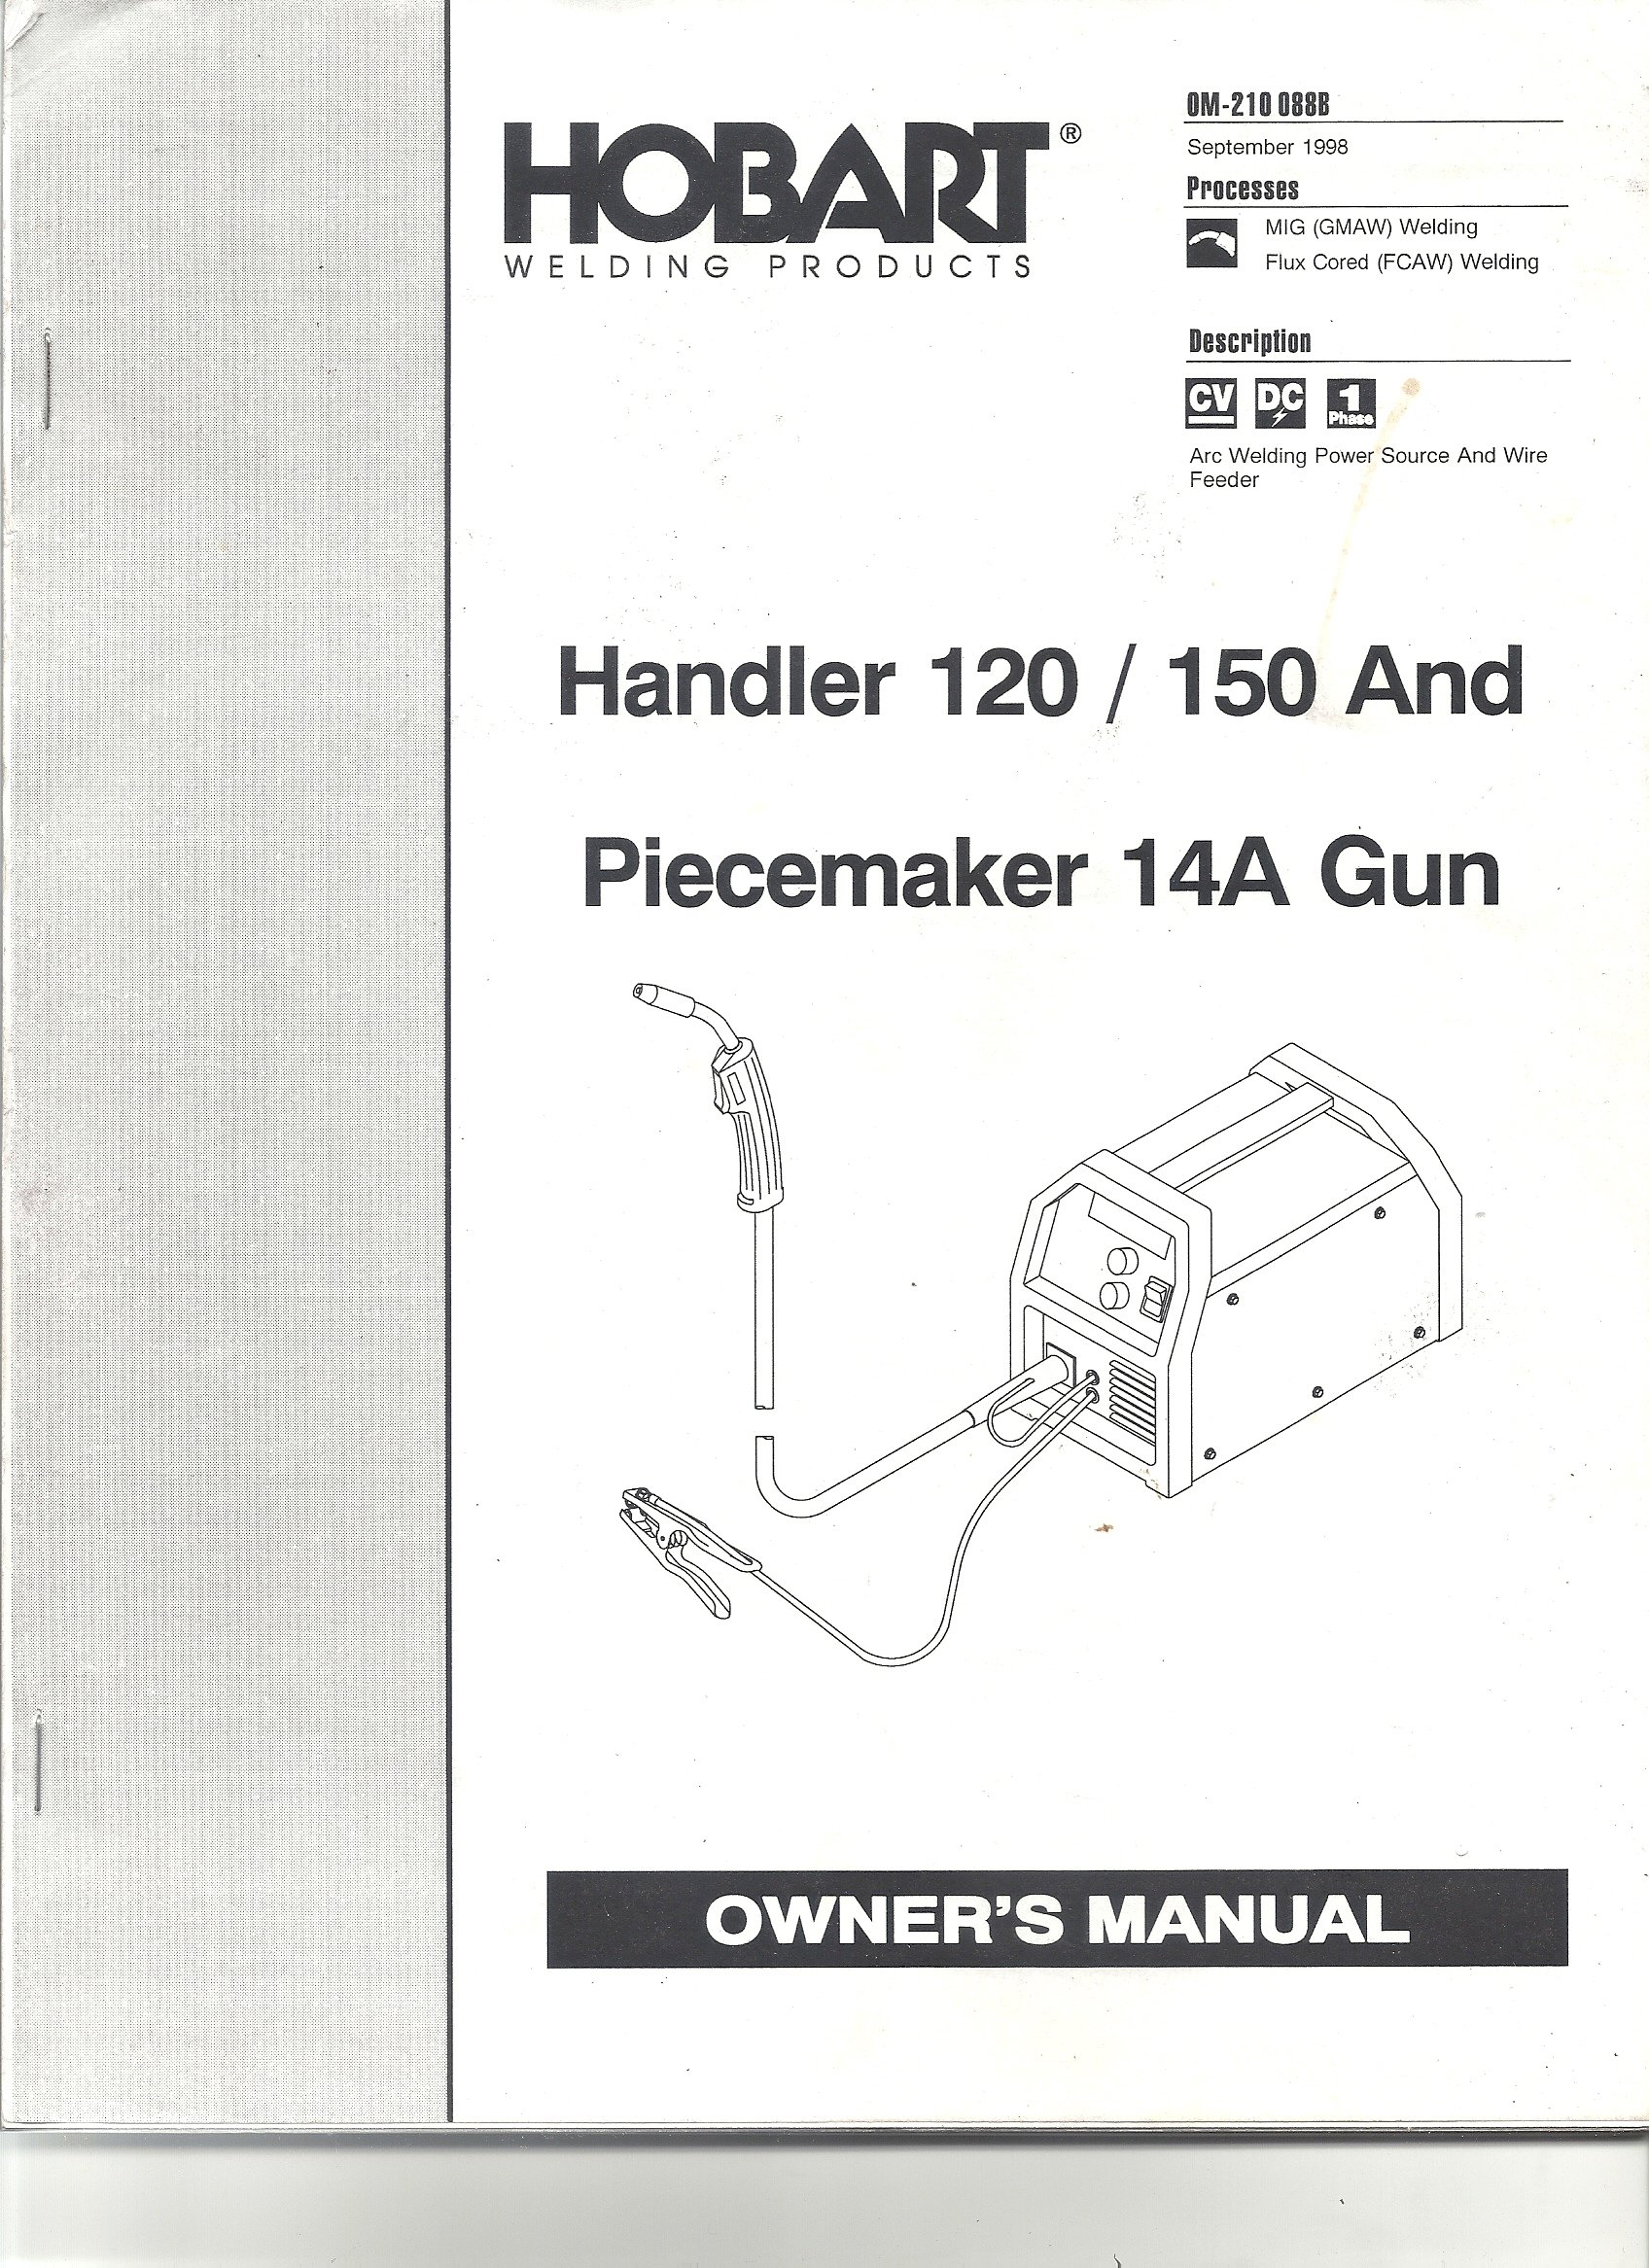 Hobart Handler 120 Wiring Diagram 33 Images Mig Welding Torch 91suewvq9sl Parts C44a